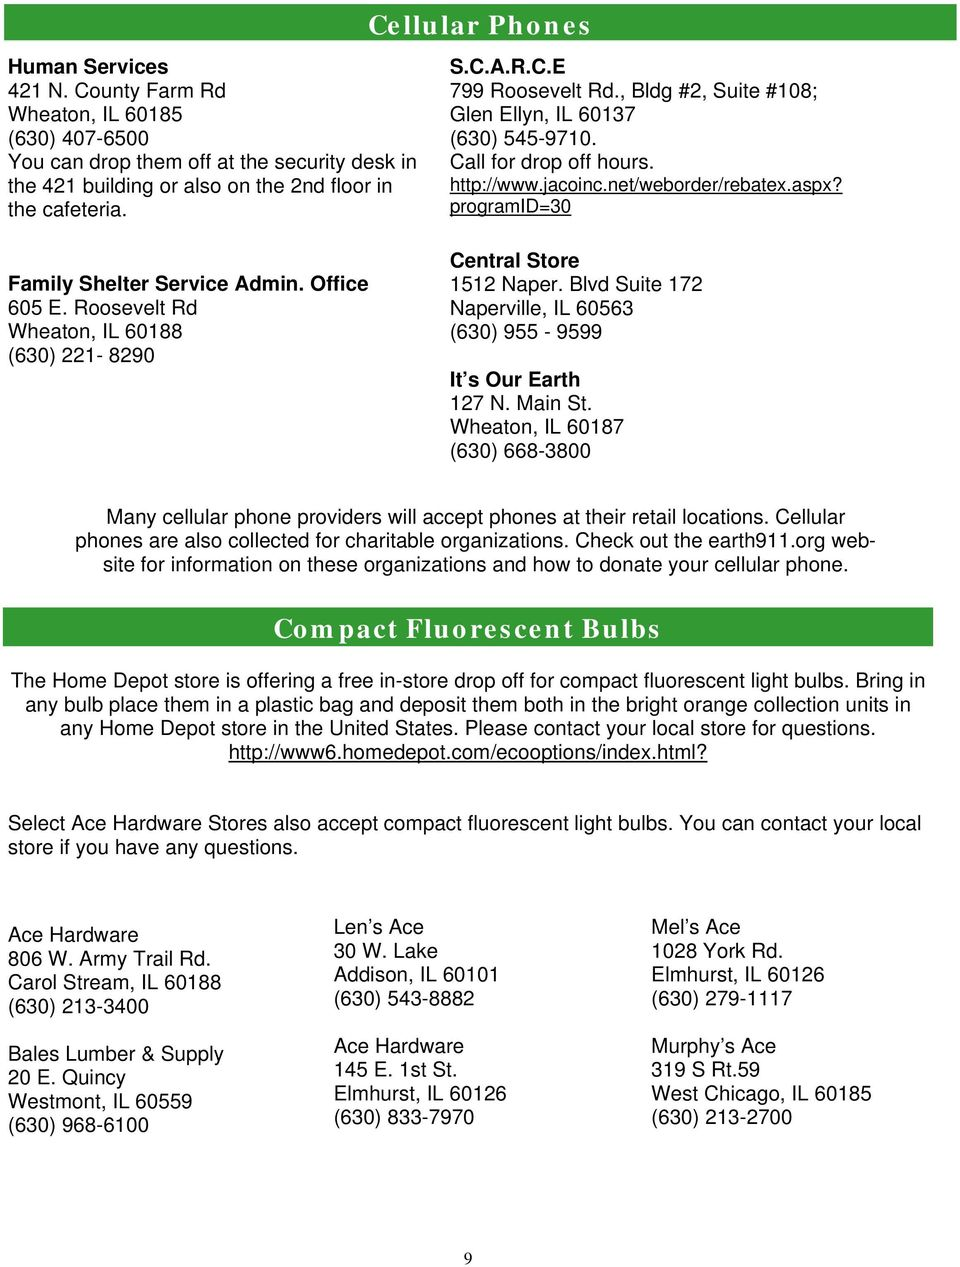 Dupage County Recycling Guide Pdf